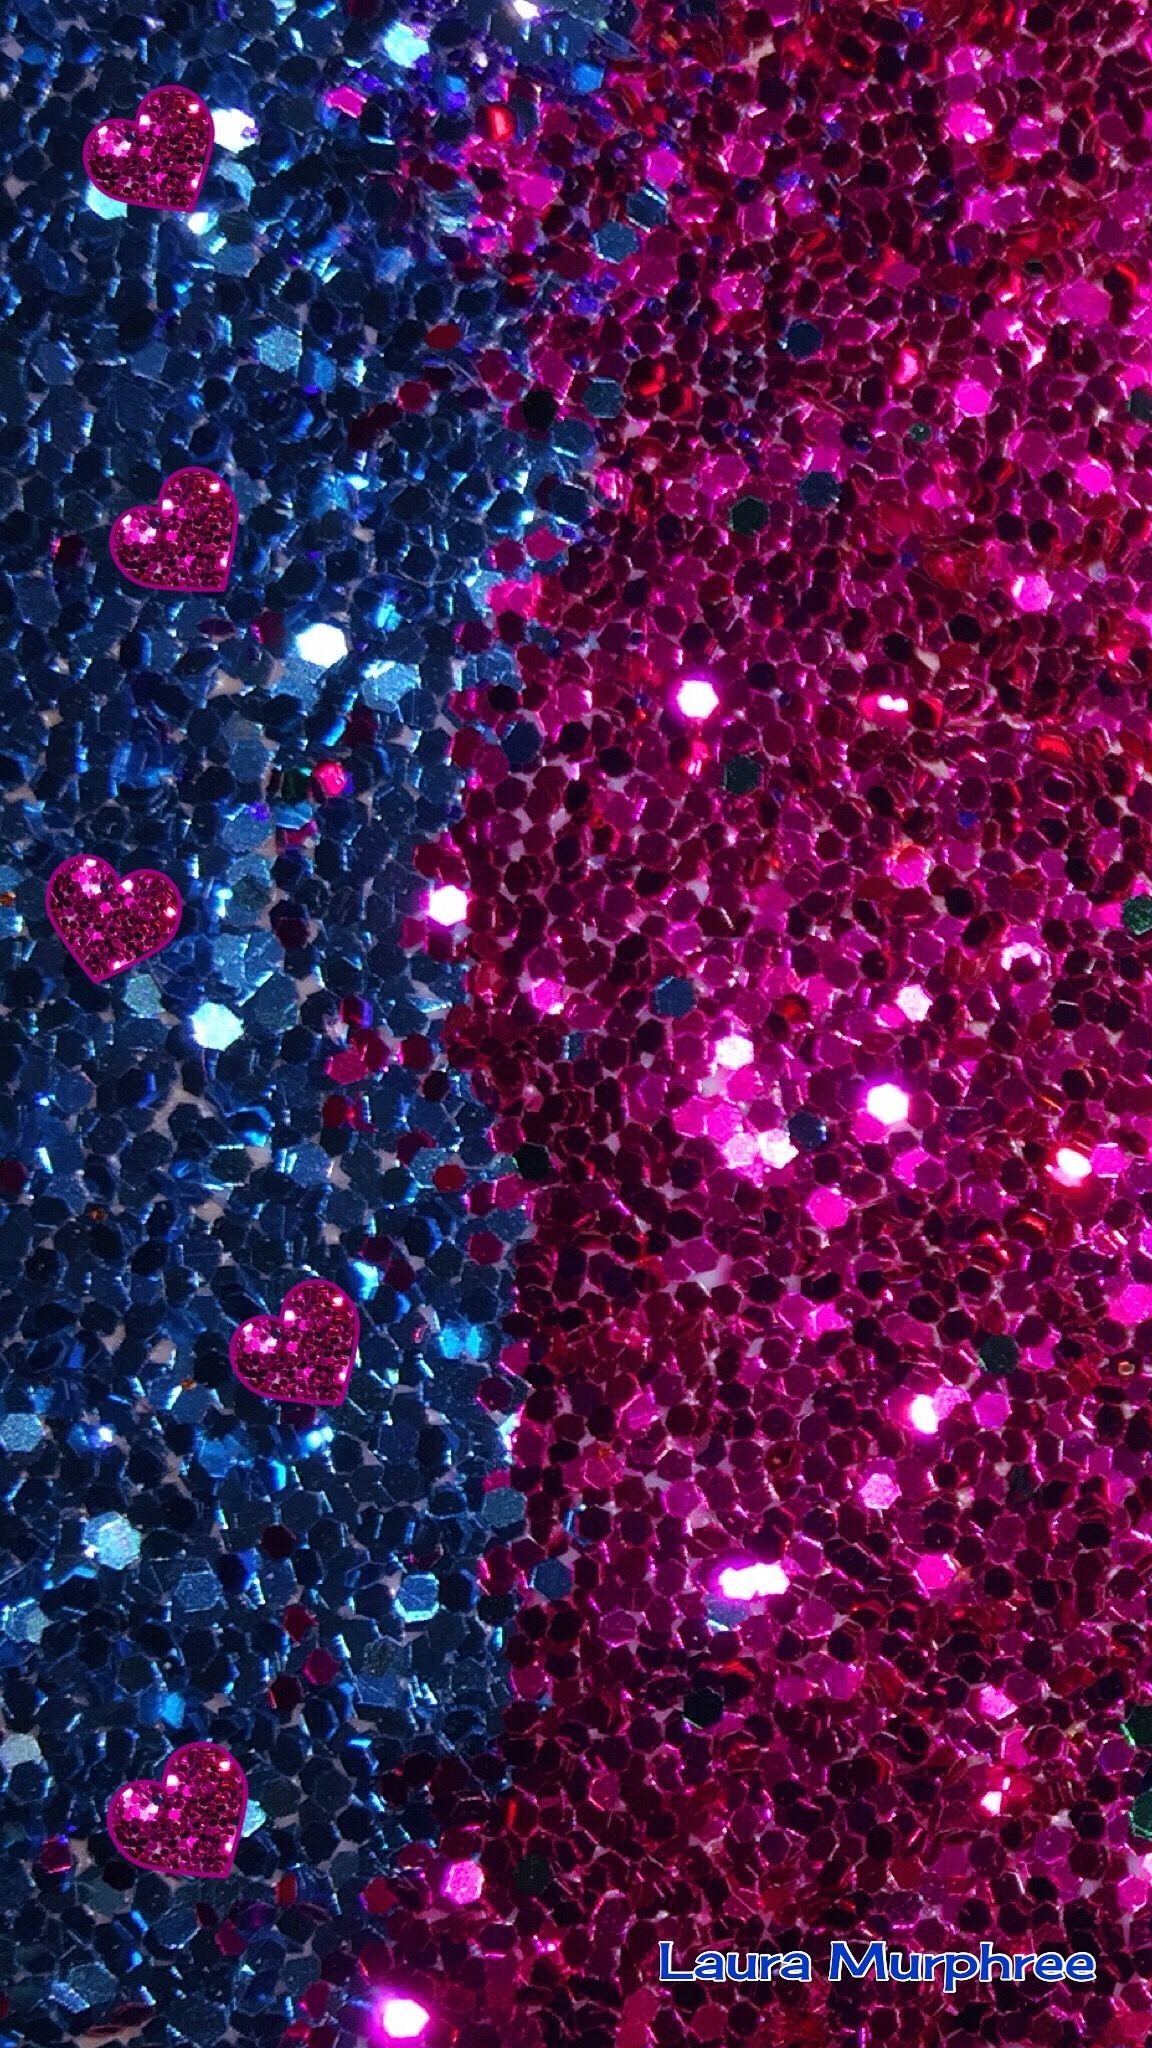 1152x2048 Glitter phone wallpaper sparkle background bling shimmer sparkles glitter  glittery colorful pink blue hearts